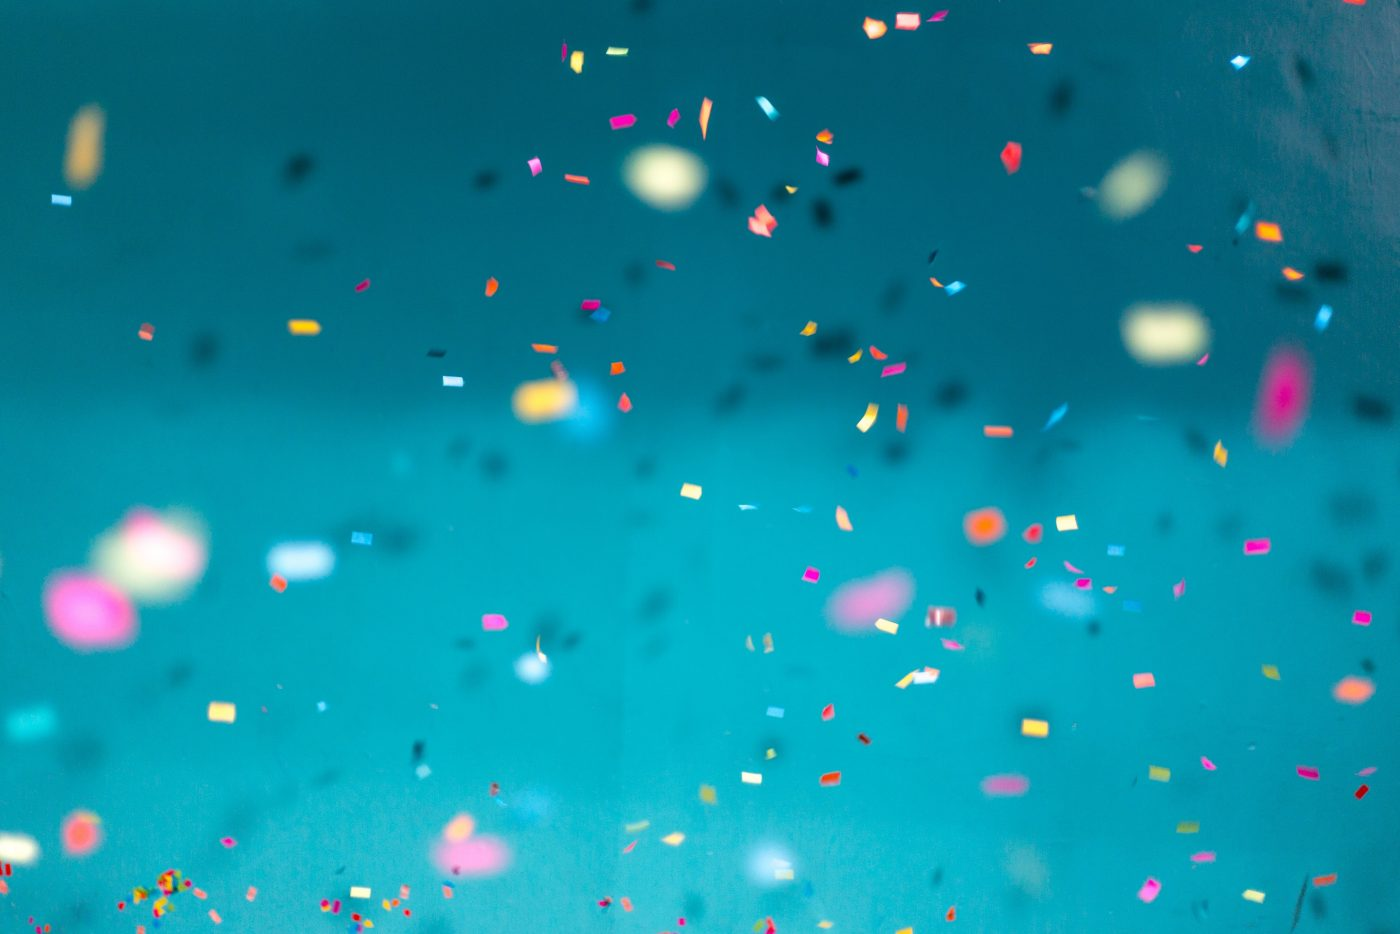 Colorful confetti falling